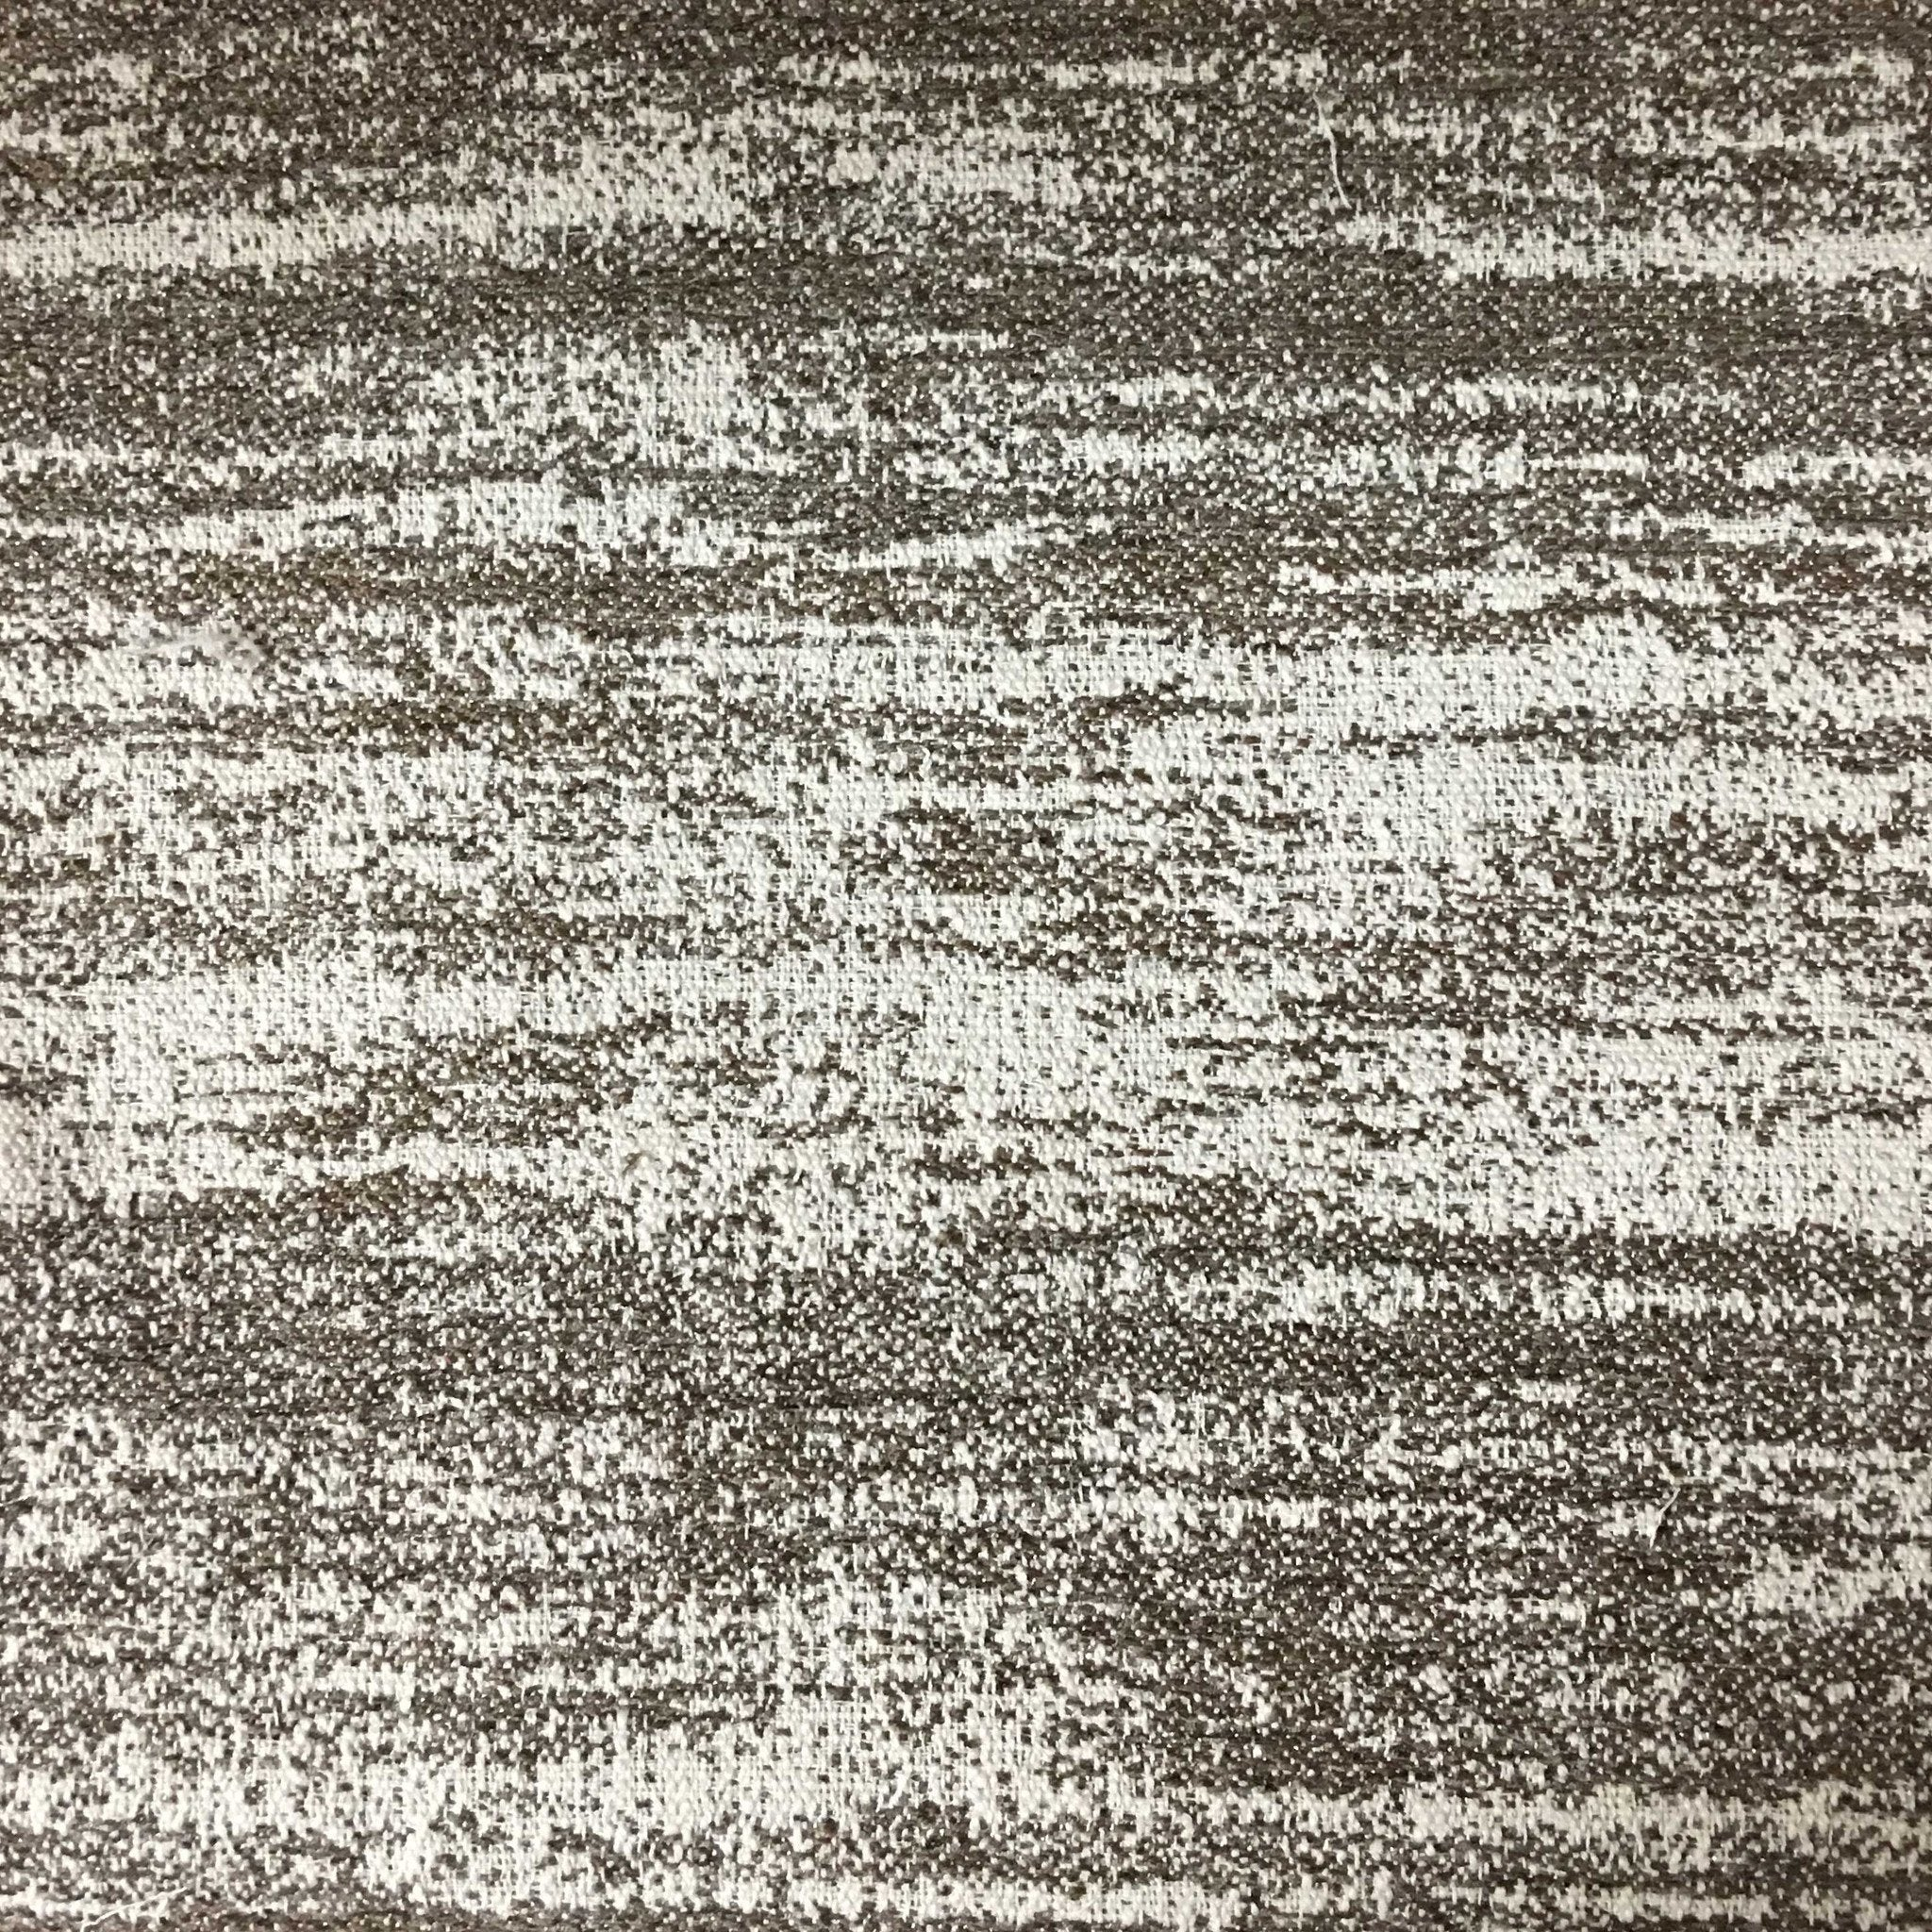 Available in 16 Colors Upholstery Fabric Drapery /& Throw Pillow Fabric by the Yard Woven Texture Interior Upholstery Sandy Glacier